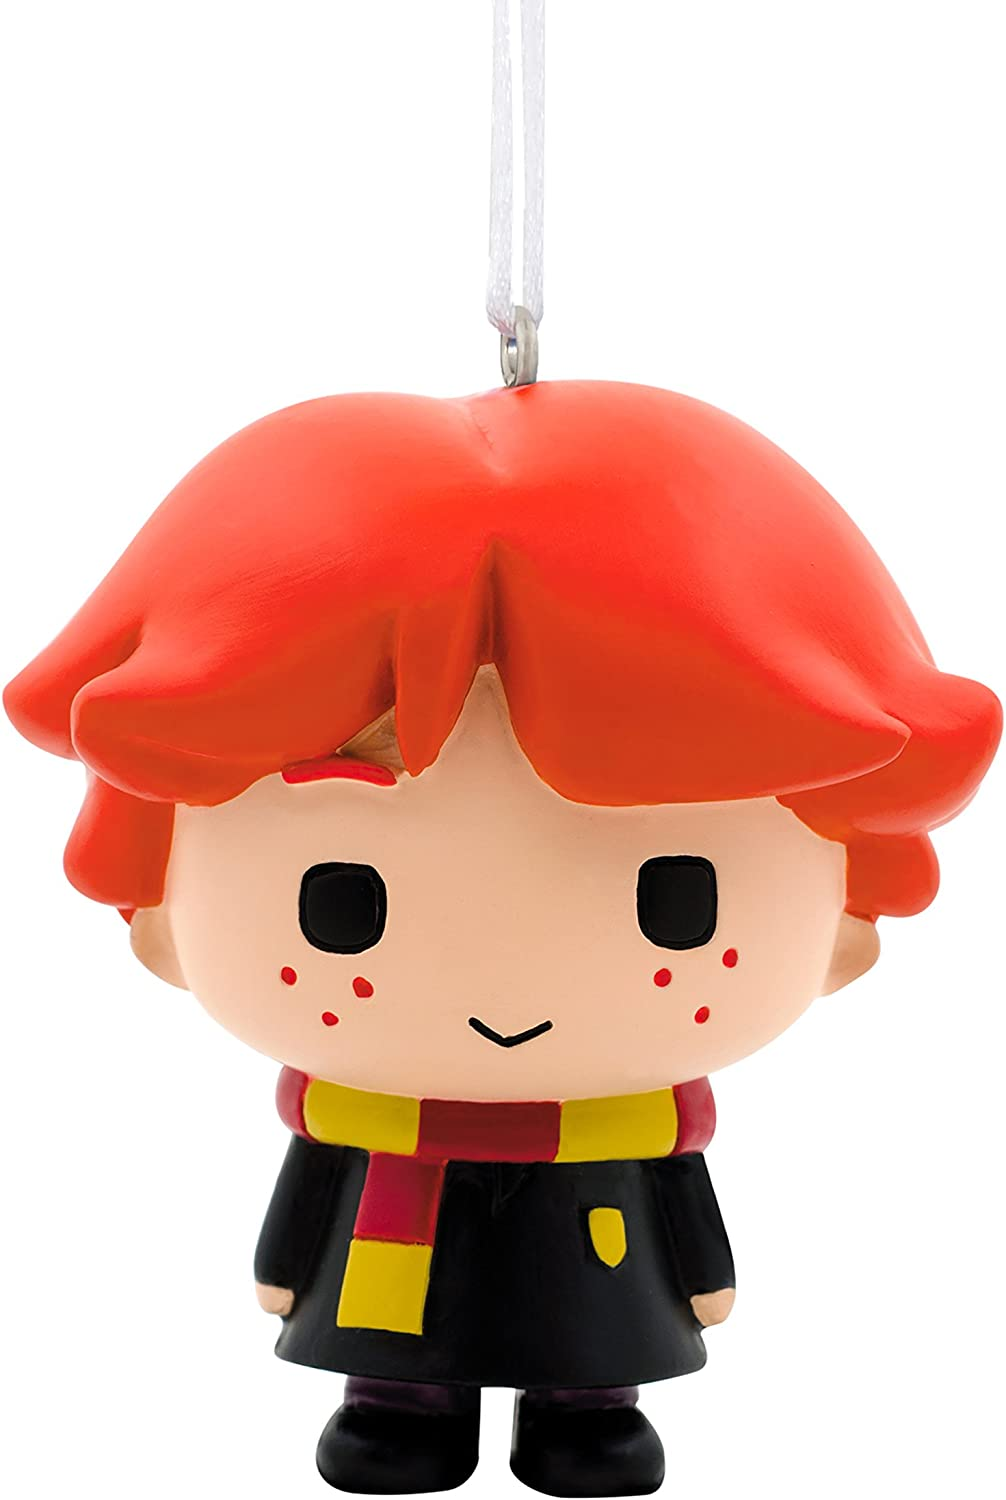 Hallmark Christmas Ornament Harry Weasley Potter Ron safety Gifts